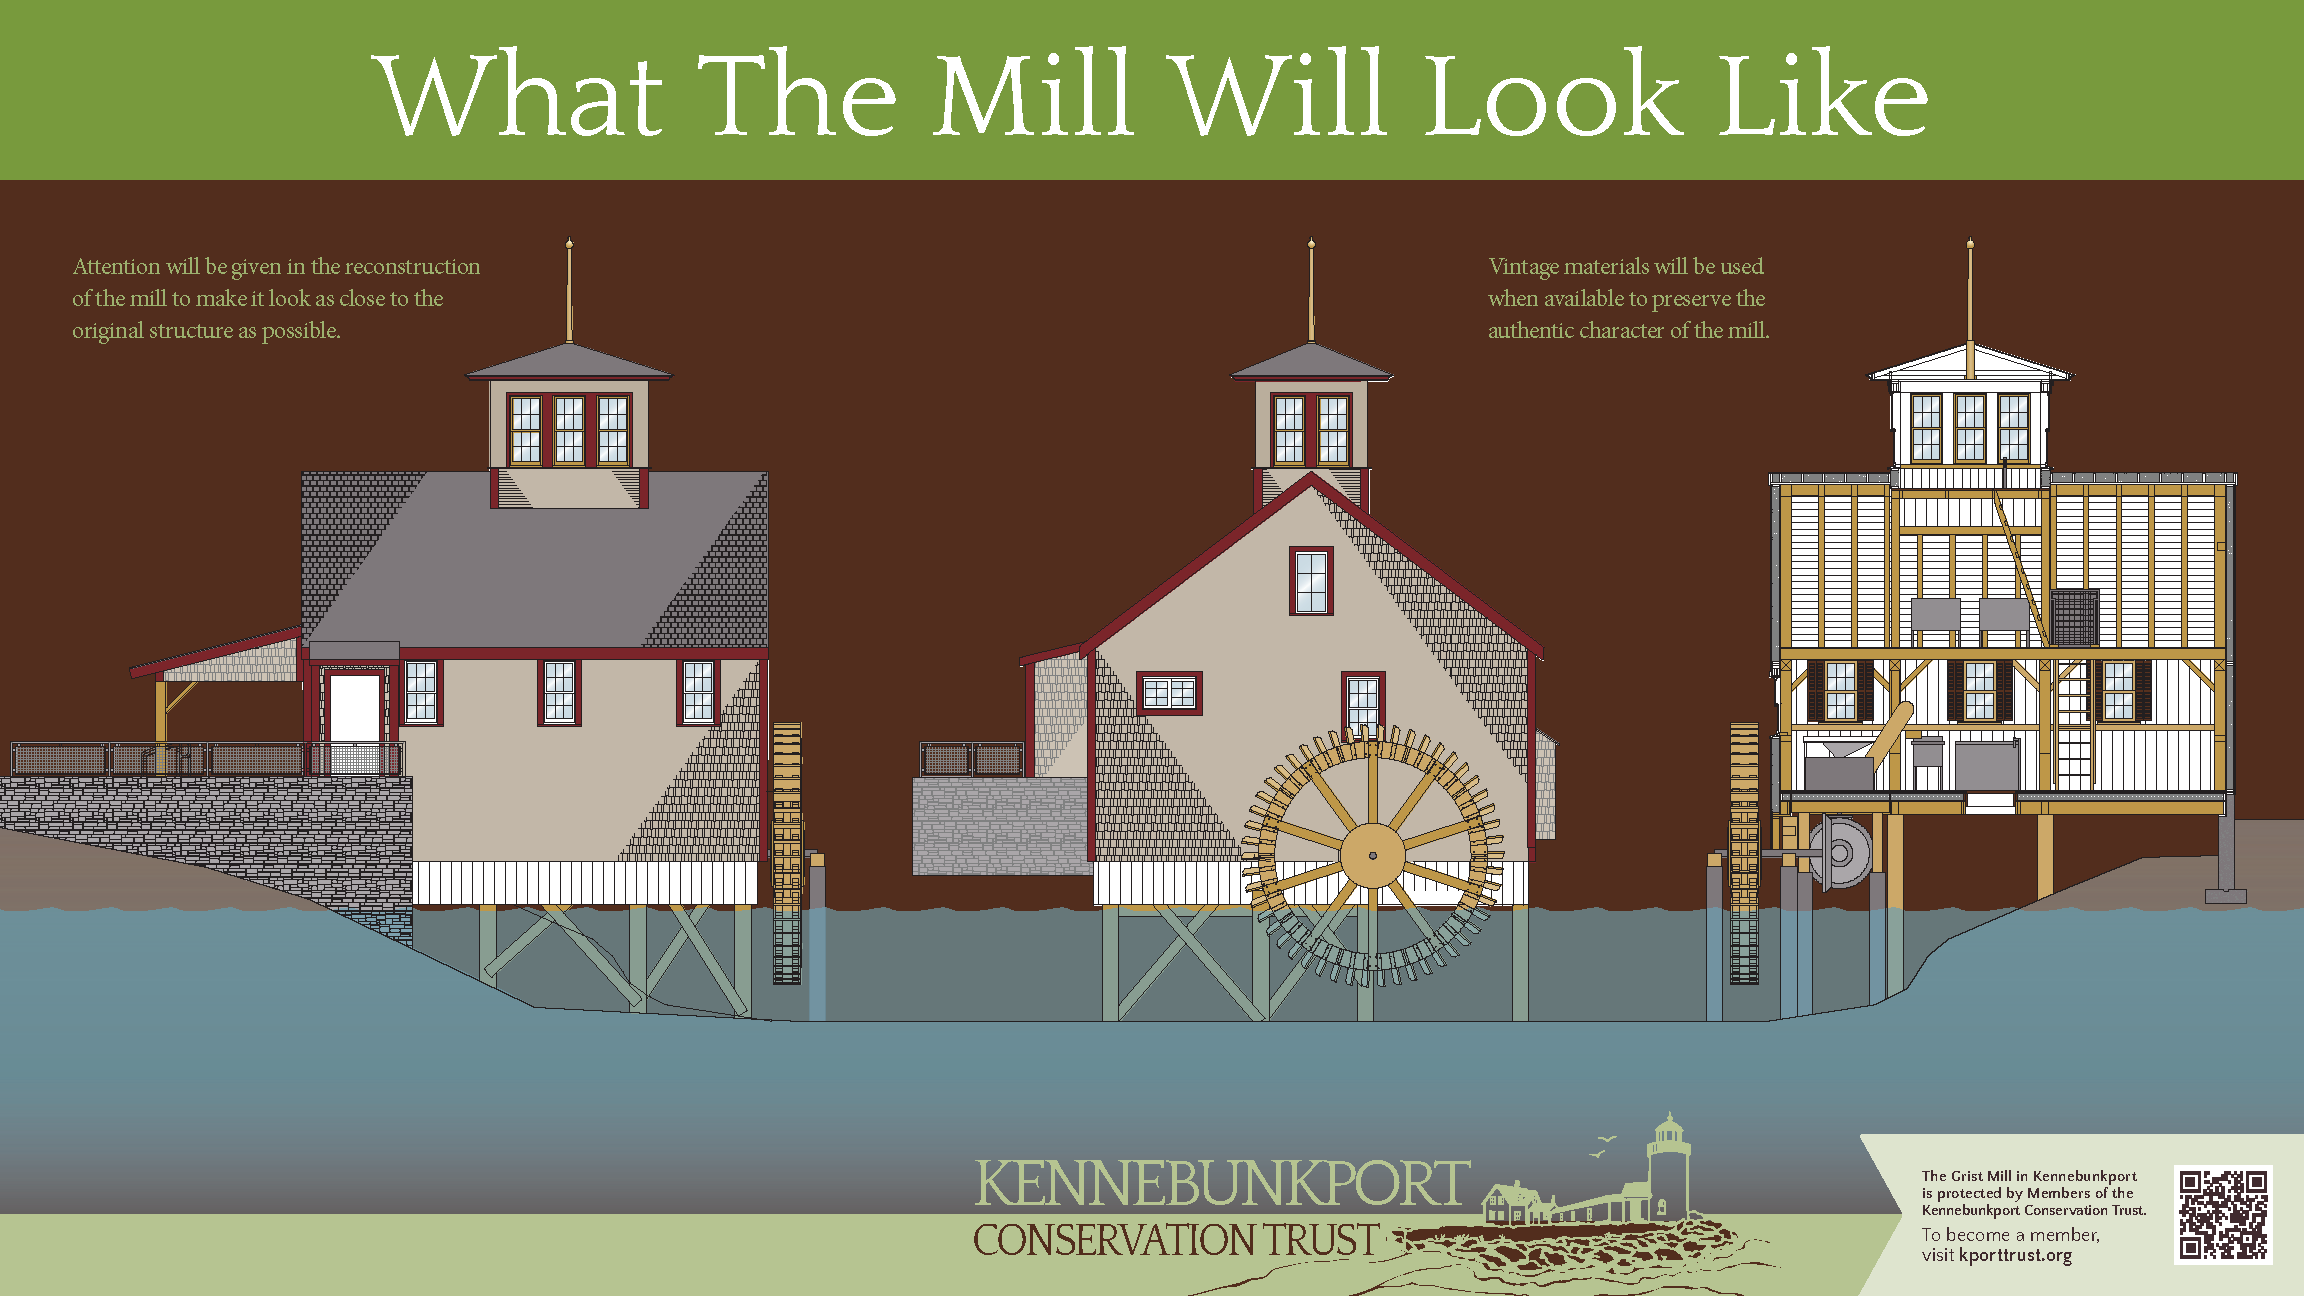 What The Mill Will Look Like